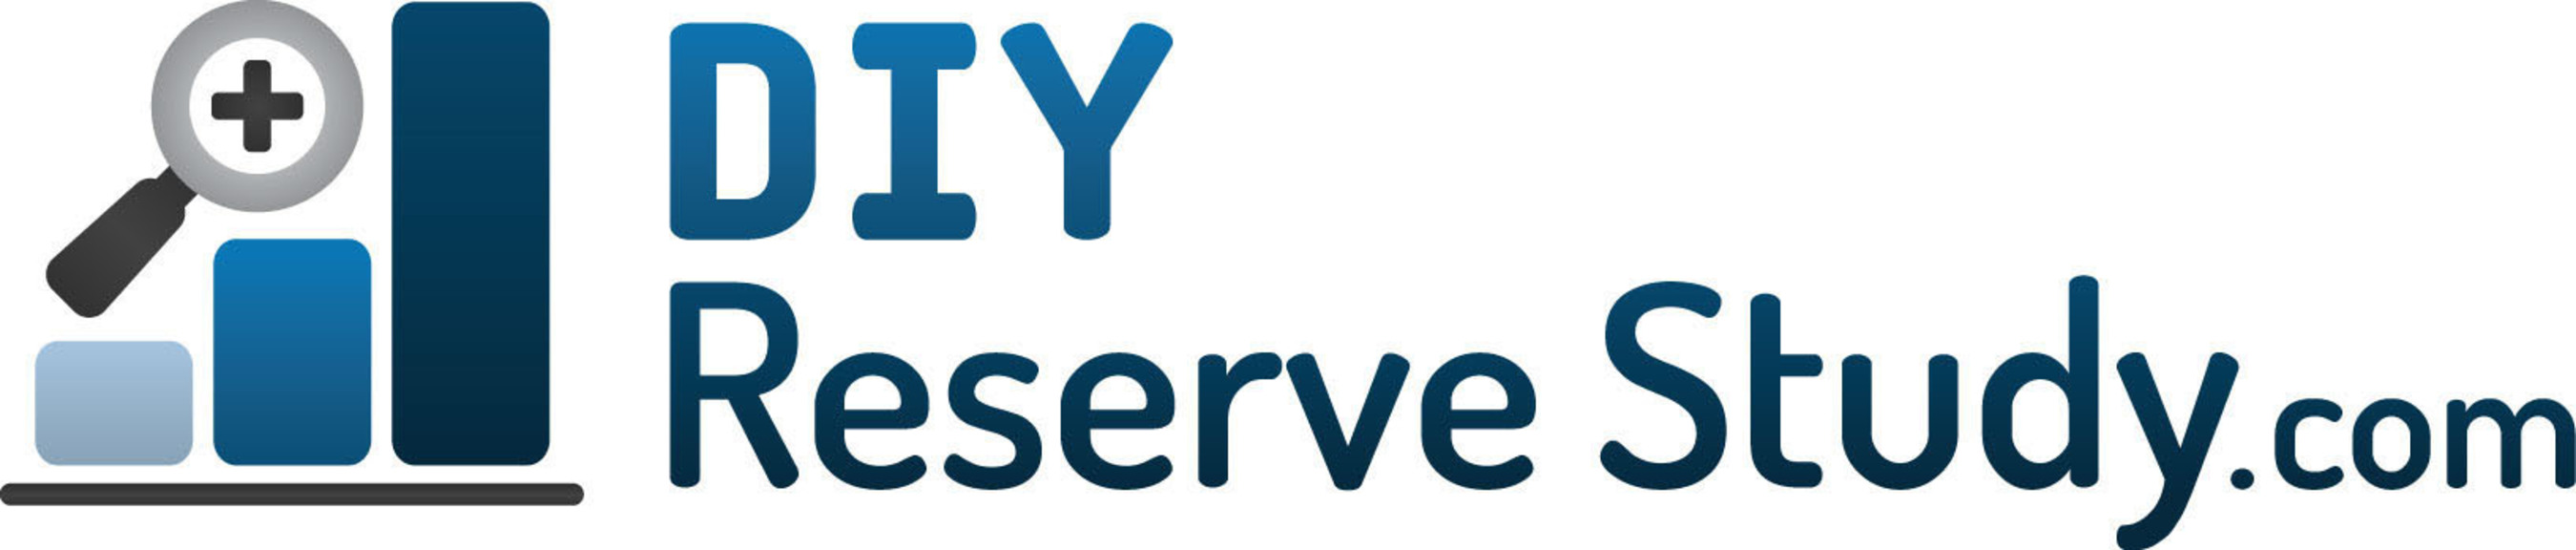 Reserve Study Company Association Reserves Launches New Website Dedicated To Do-It-Yourself Solution. (PRNewsFoto/Association Reserves, Inc) (PRNewsFoto/ASSOCIATION RESERVES, INC)